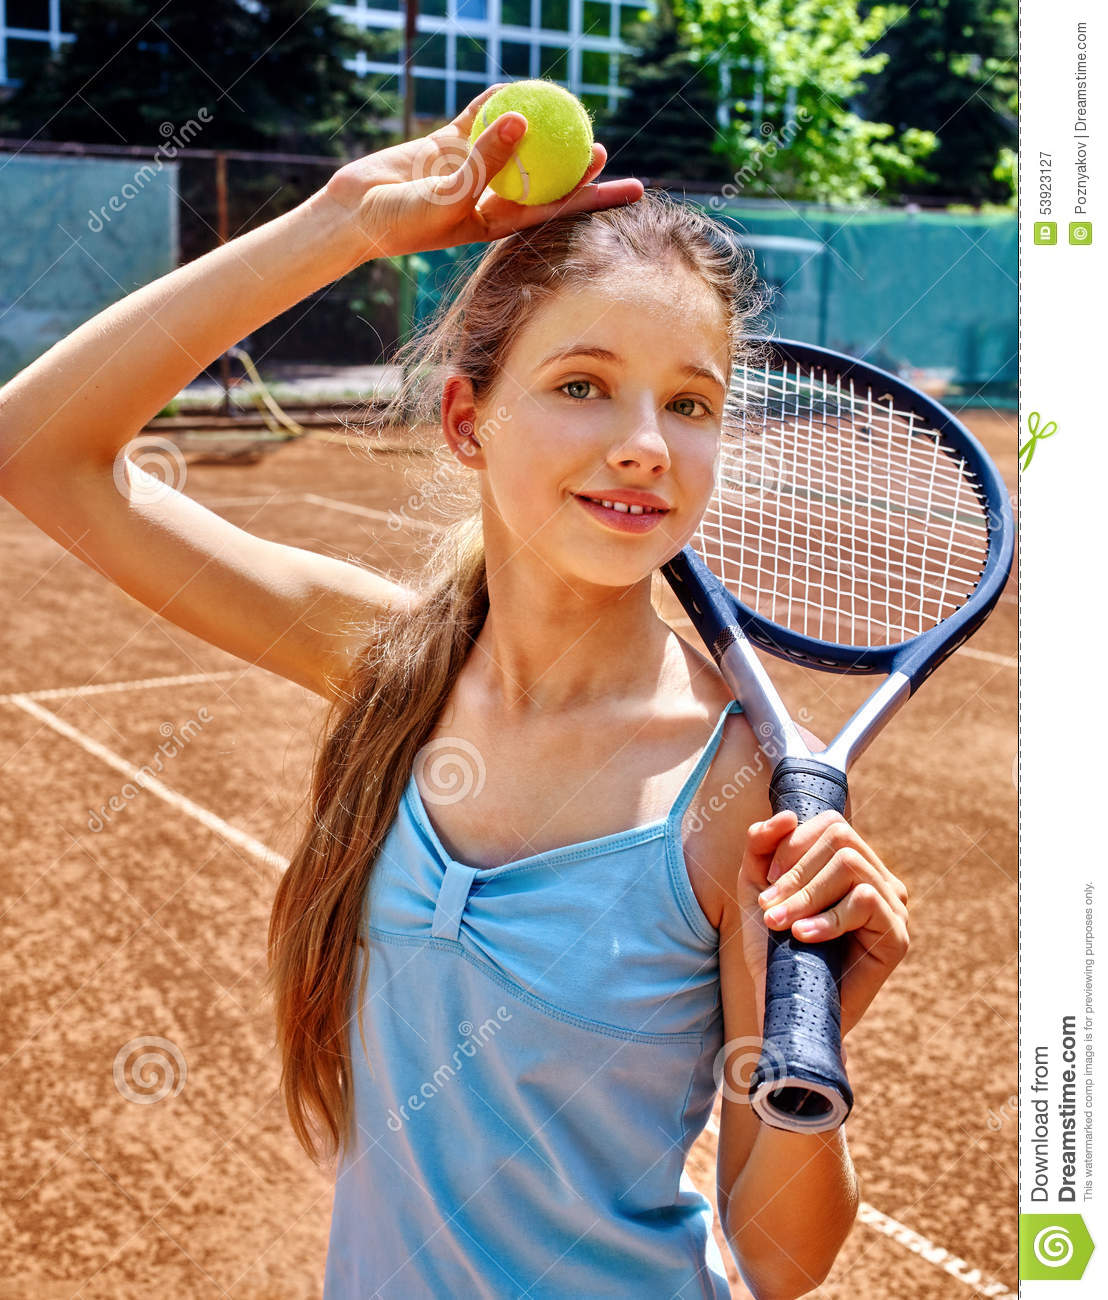 Girl Athlete With Racket And Ball On Tennis Stock Image -8911